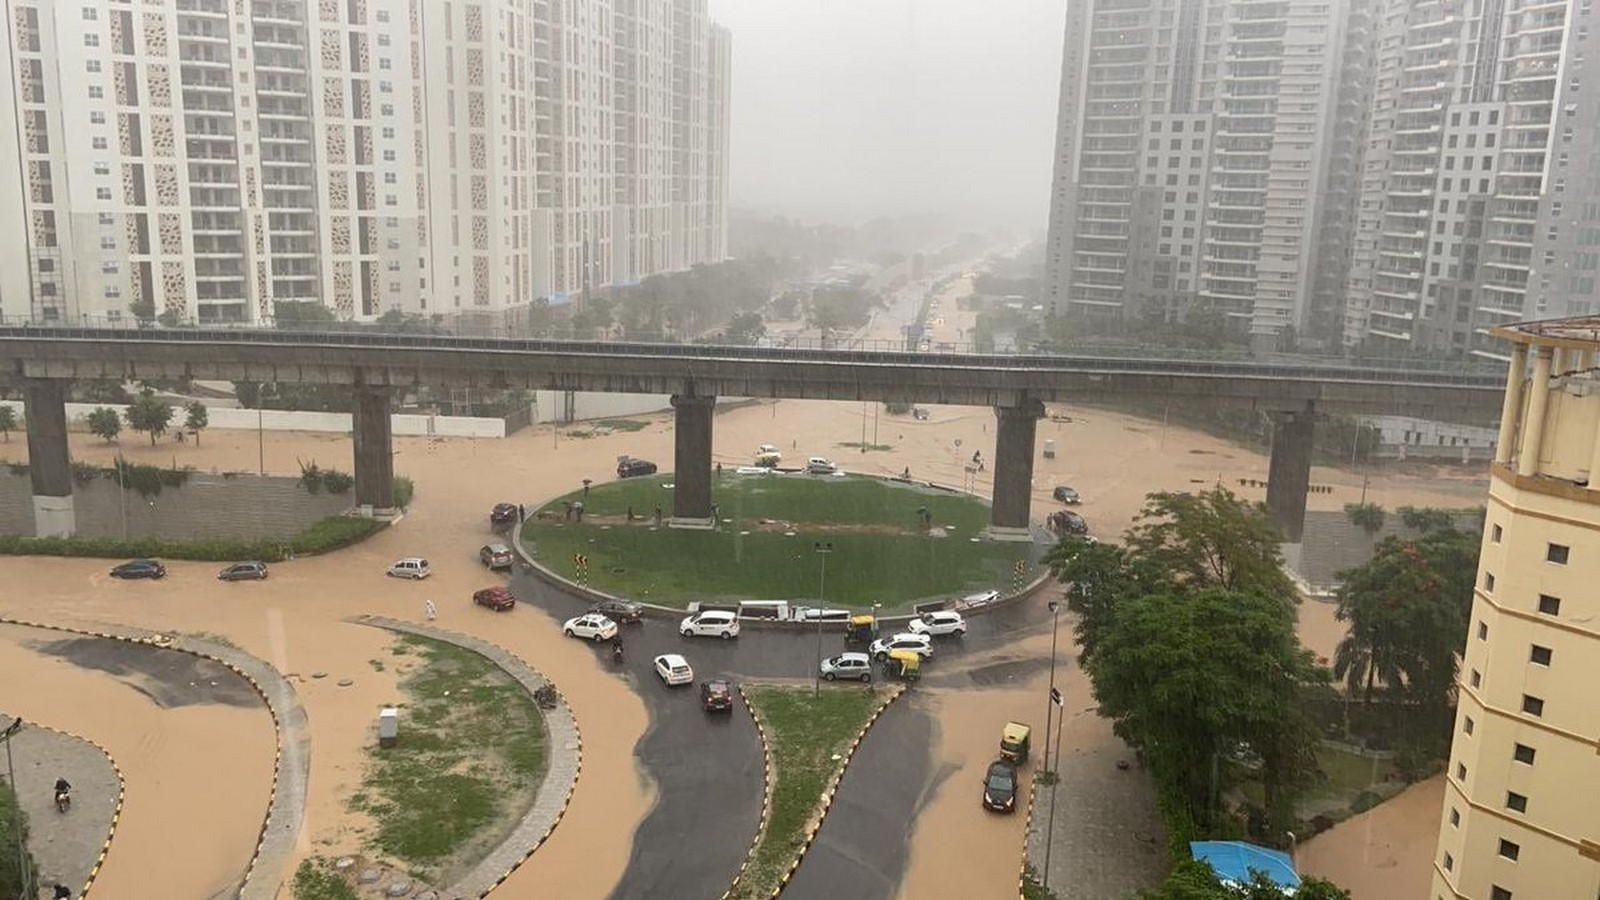 Gurgaon Architecture - An inspiration from New York? - Sheet